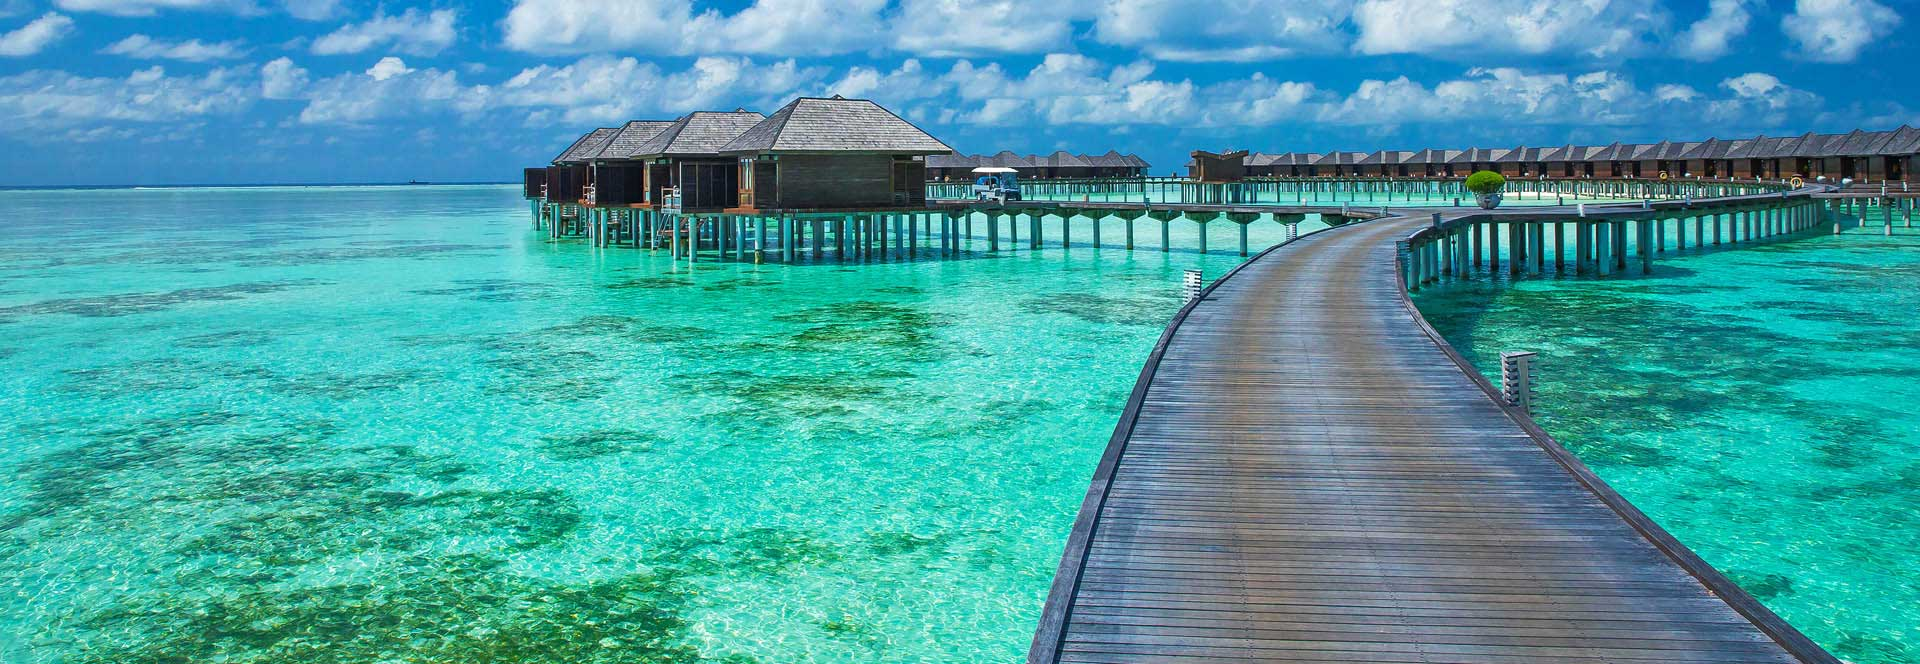 Maldives holidays. Tours & holidays in Maldives in 2017 & 2018